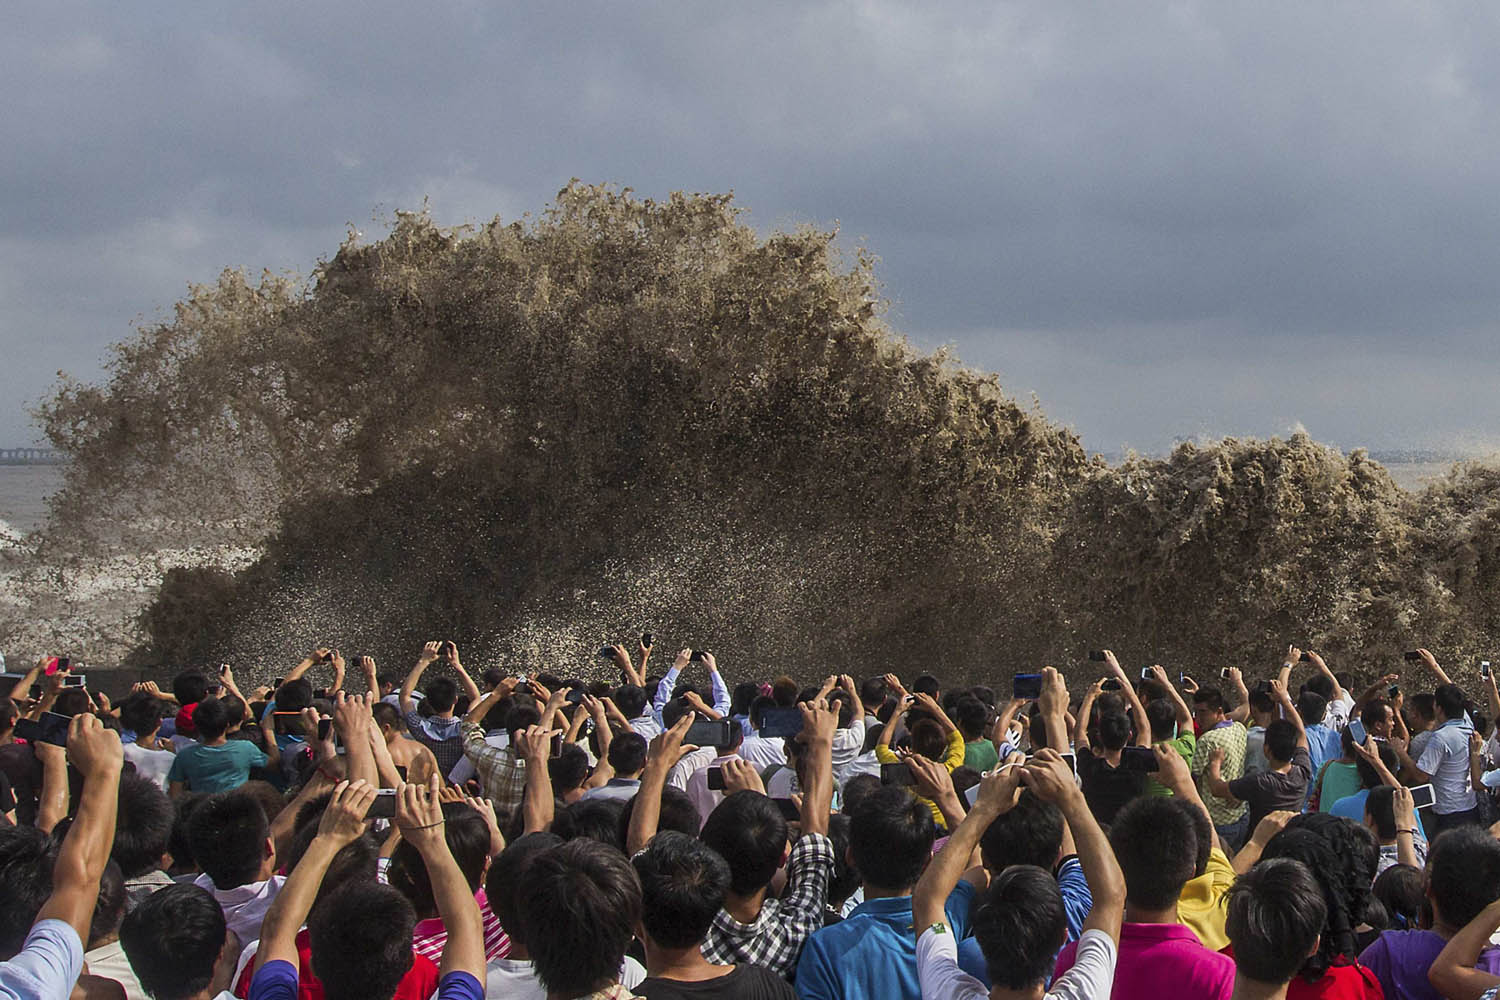 Sept. 22, 2013. Visitors take pictures of tidal waves under the influence of Typhoon Usagi in Hangzhou, Zhejiang province, China.